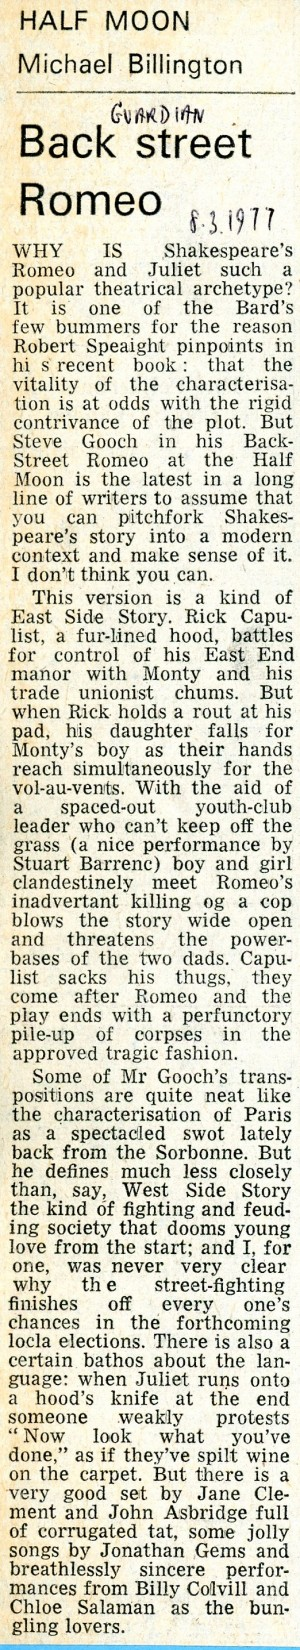 Backstreet Romeo Review - Michael Billington, The Guardian, 8th Mar, 1977.